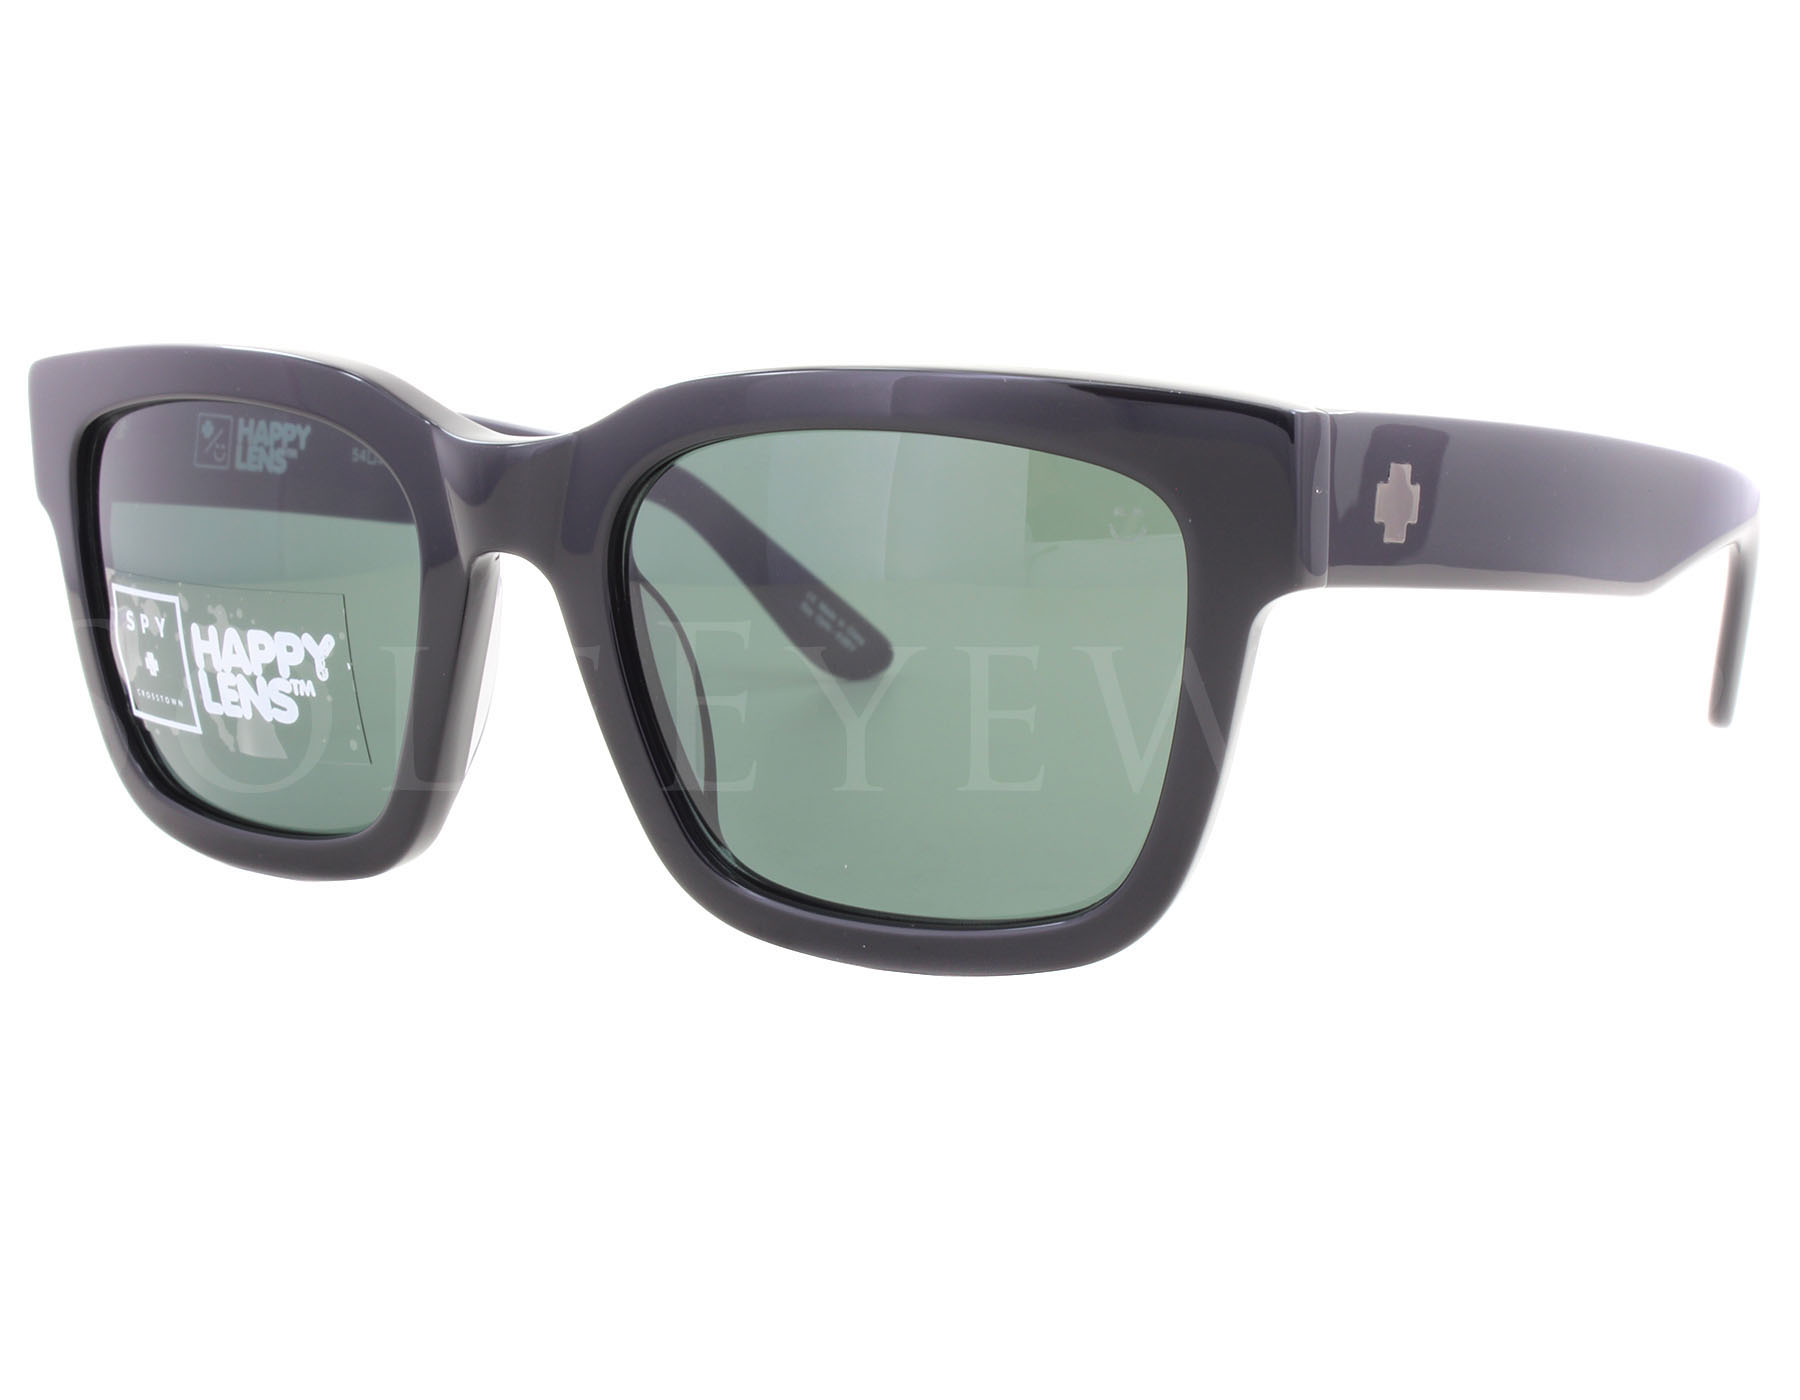 f66dcfa8e9 Details about NEW Spy Optics Trancas Black   Happy Grey Green 673240038863  Sunglasses